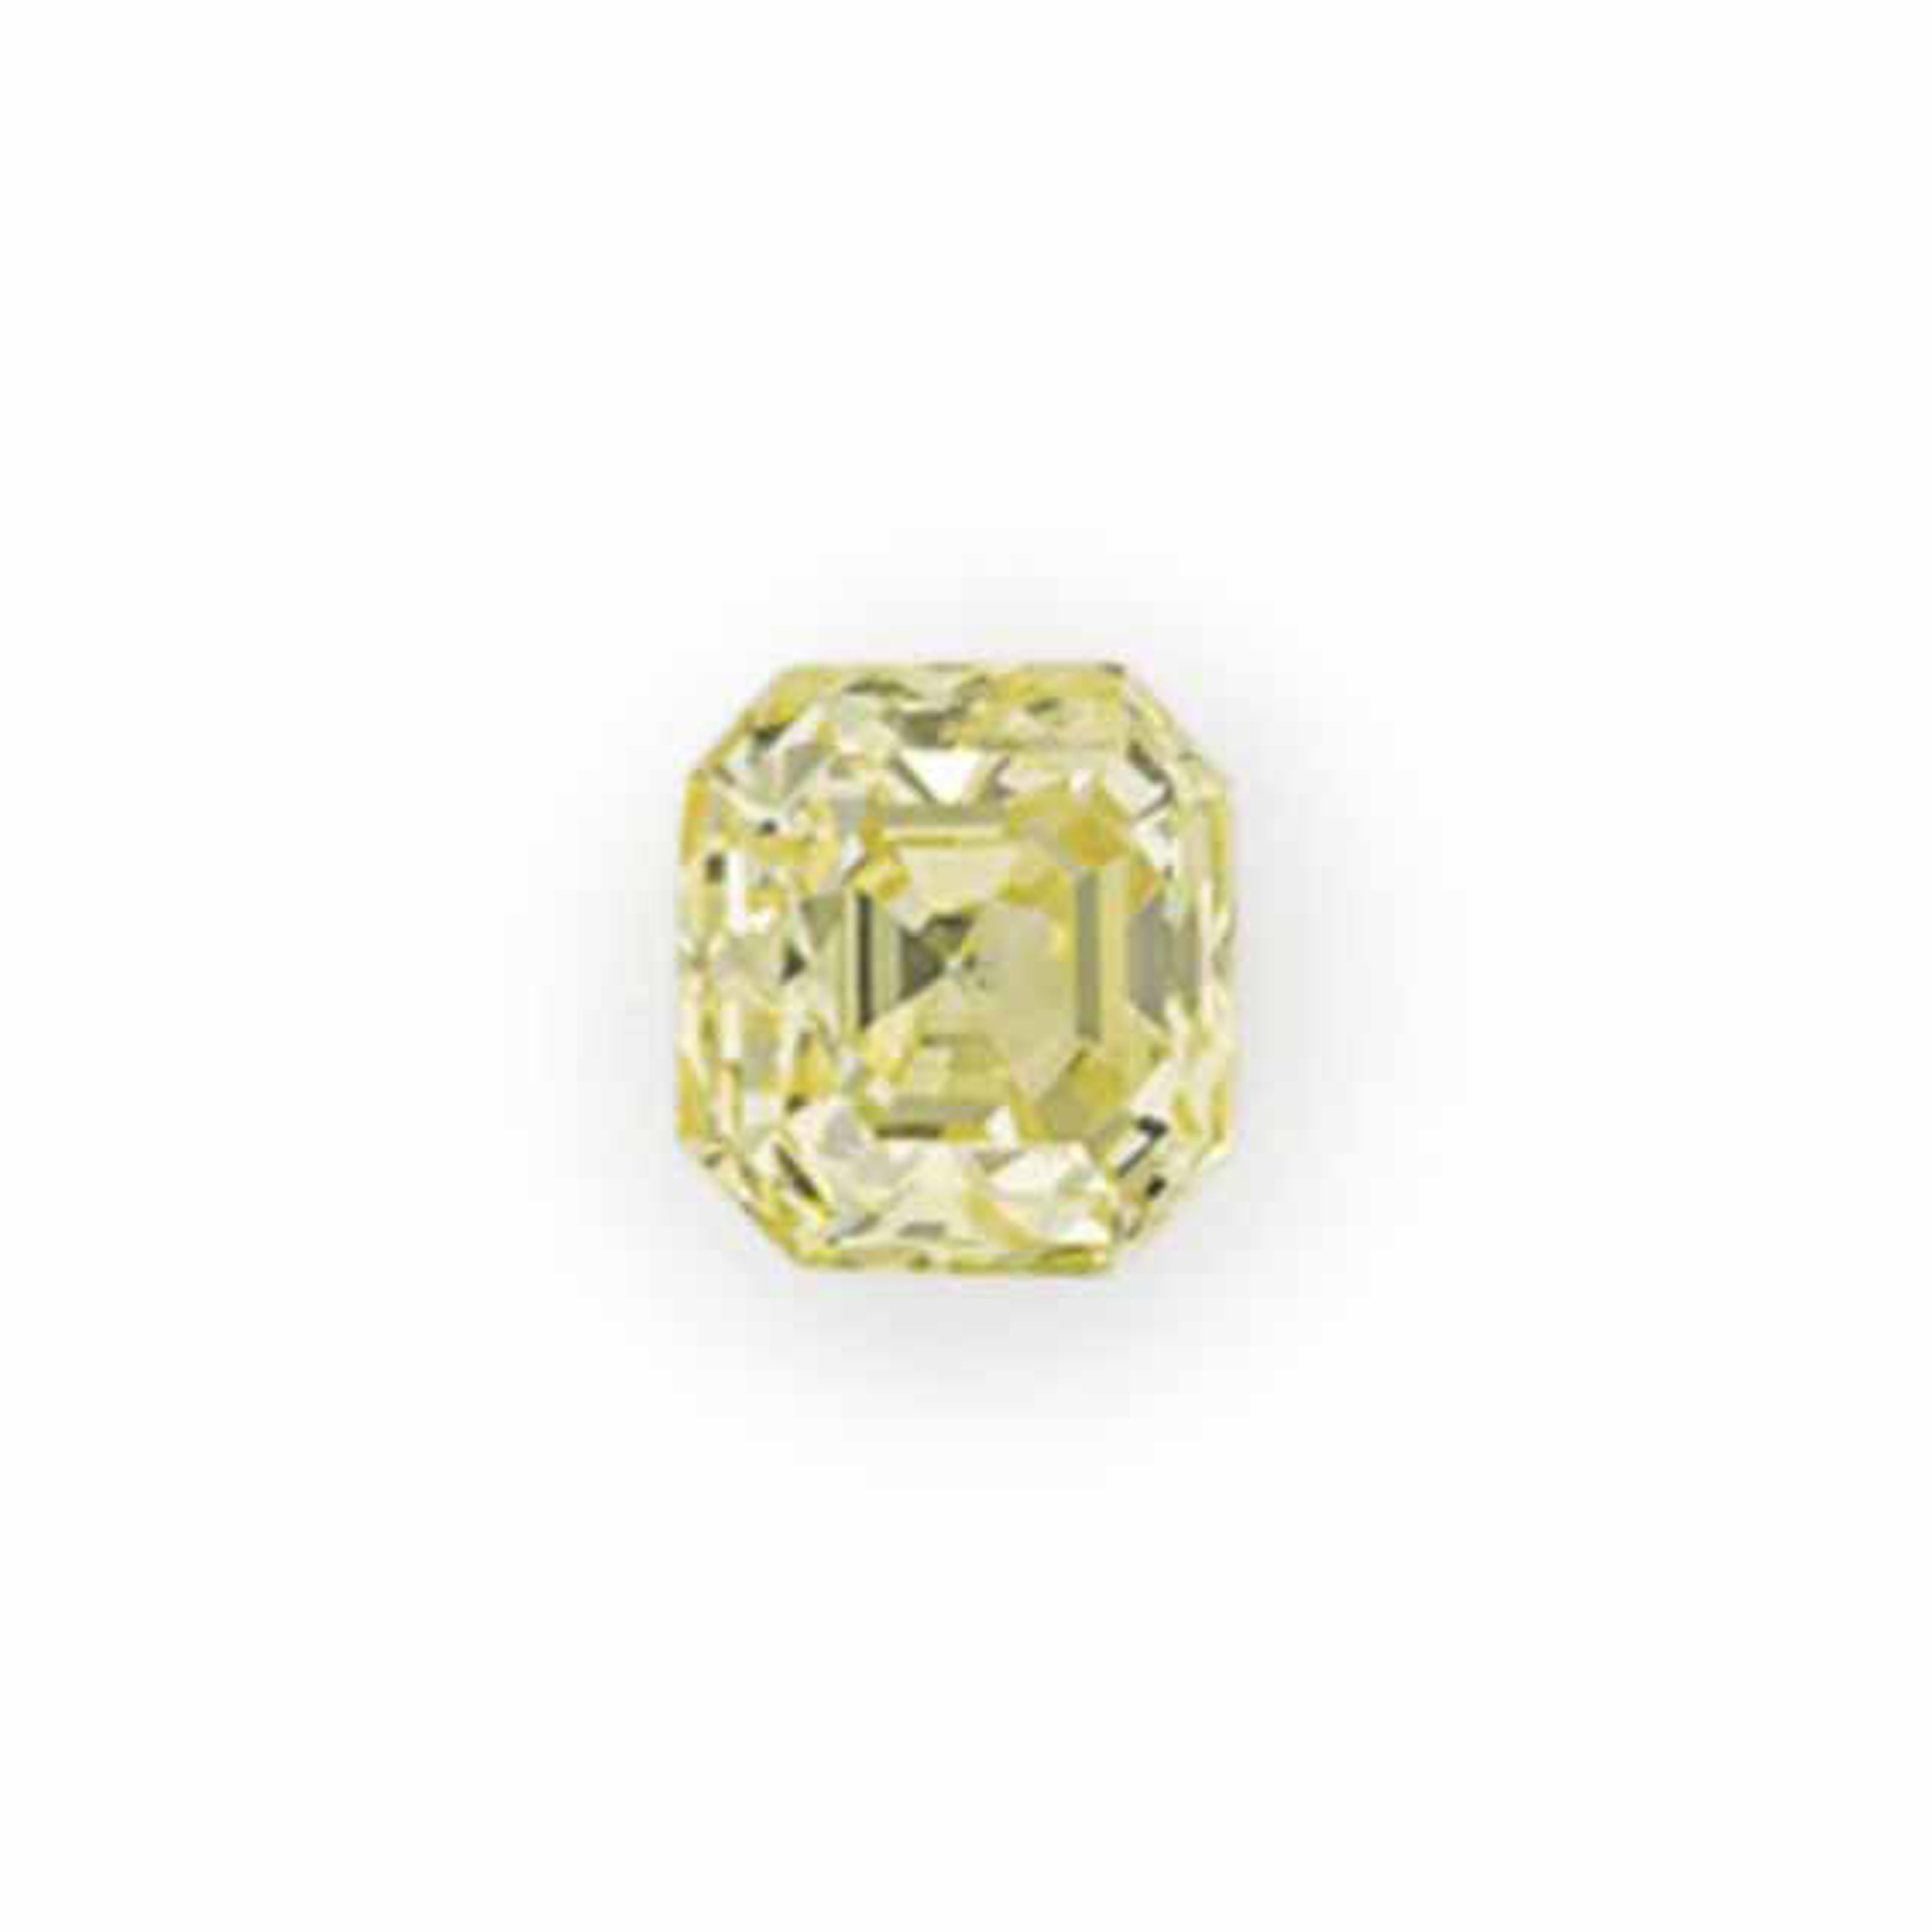 AN UNMOUNTED COLORED DIAMOND